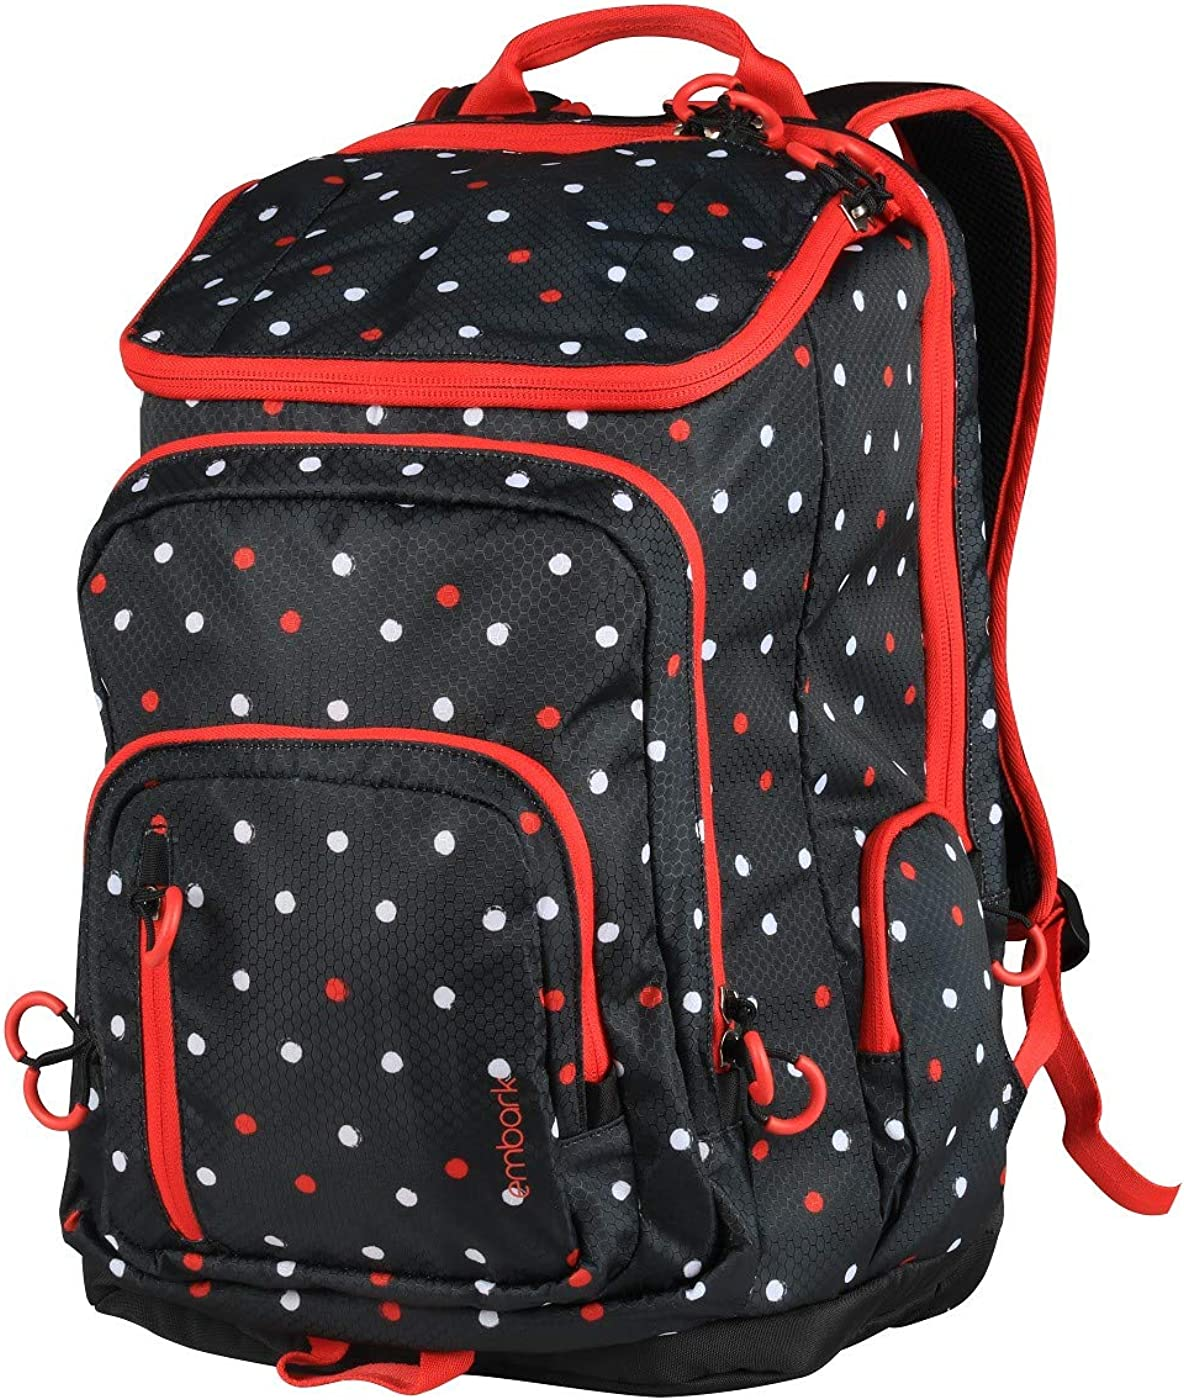 Embark 19 Jartop Elite Backpack-Black